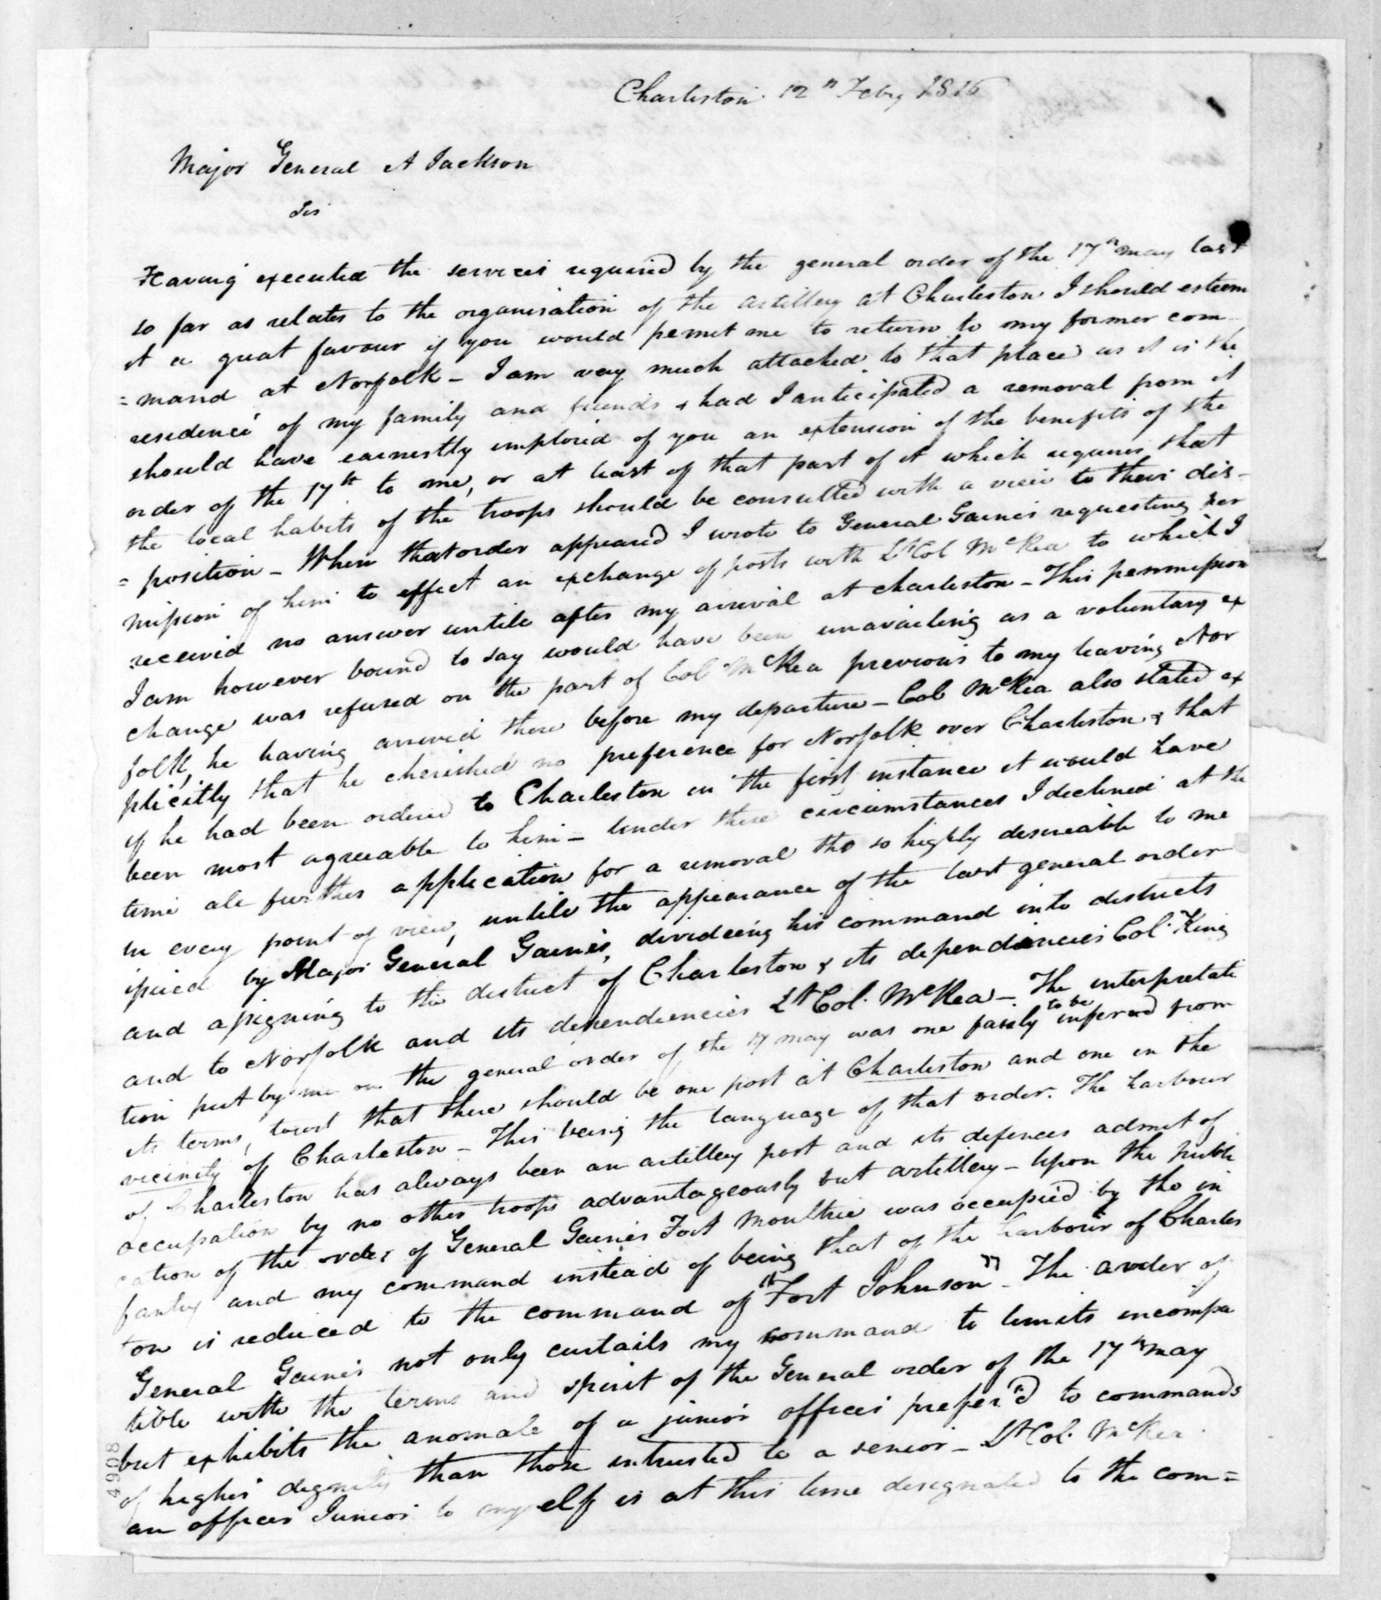 William Lindsay to Andrew Jackson, February 12, 1816